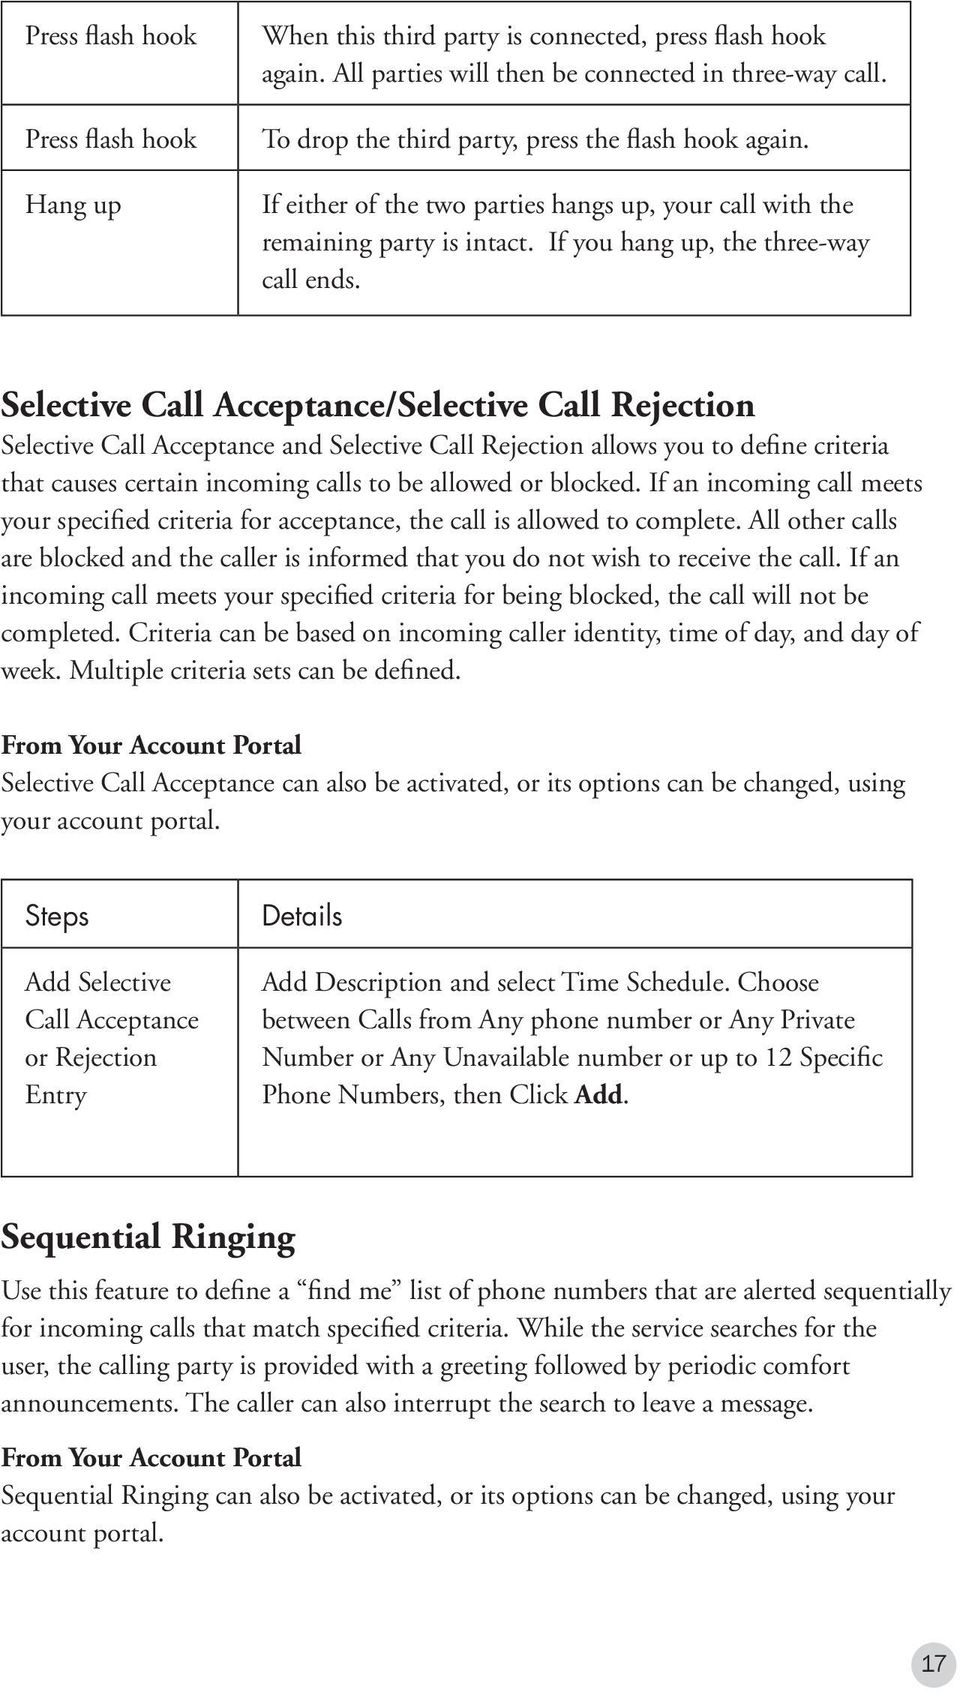 Selective Call Acceptance/Selective Call Rejection Selective Call Acceptance and Selective Call Rejection allows you to define criteria that causes certain incoming calls to be allowed or blocked.